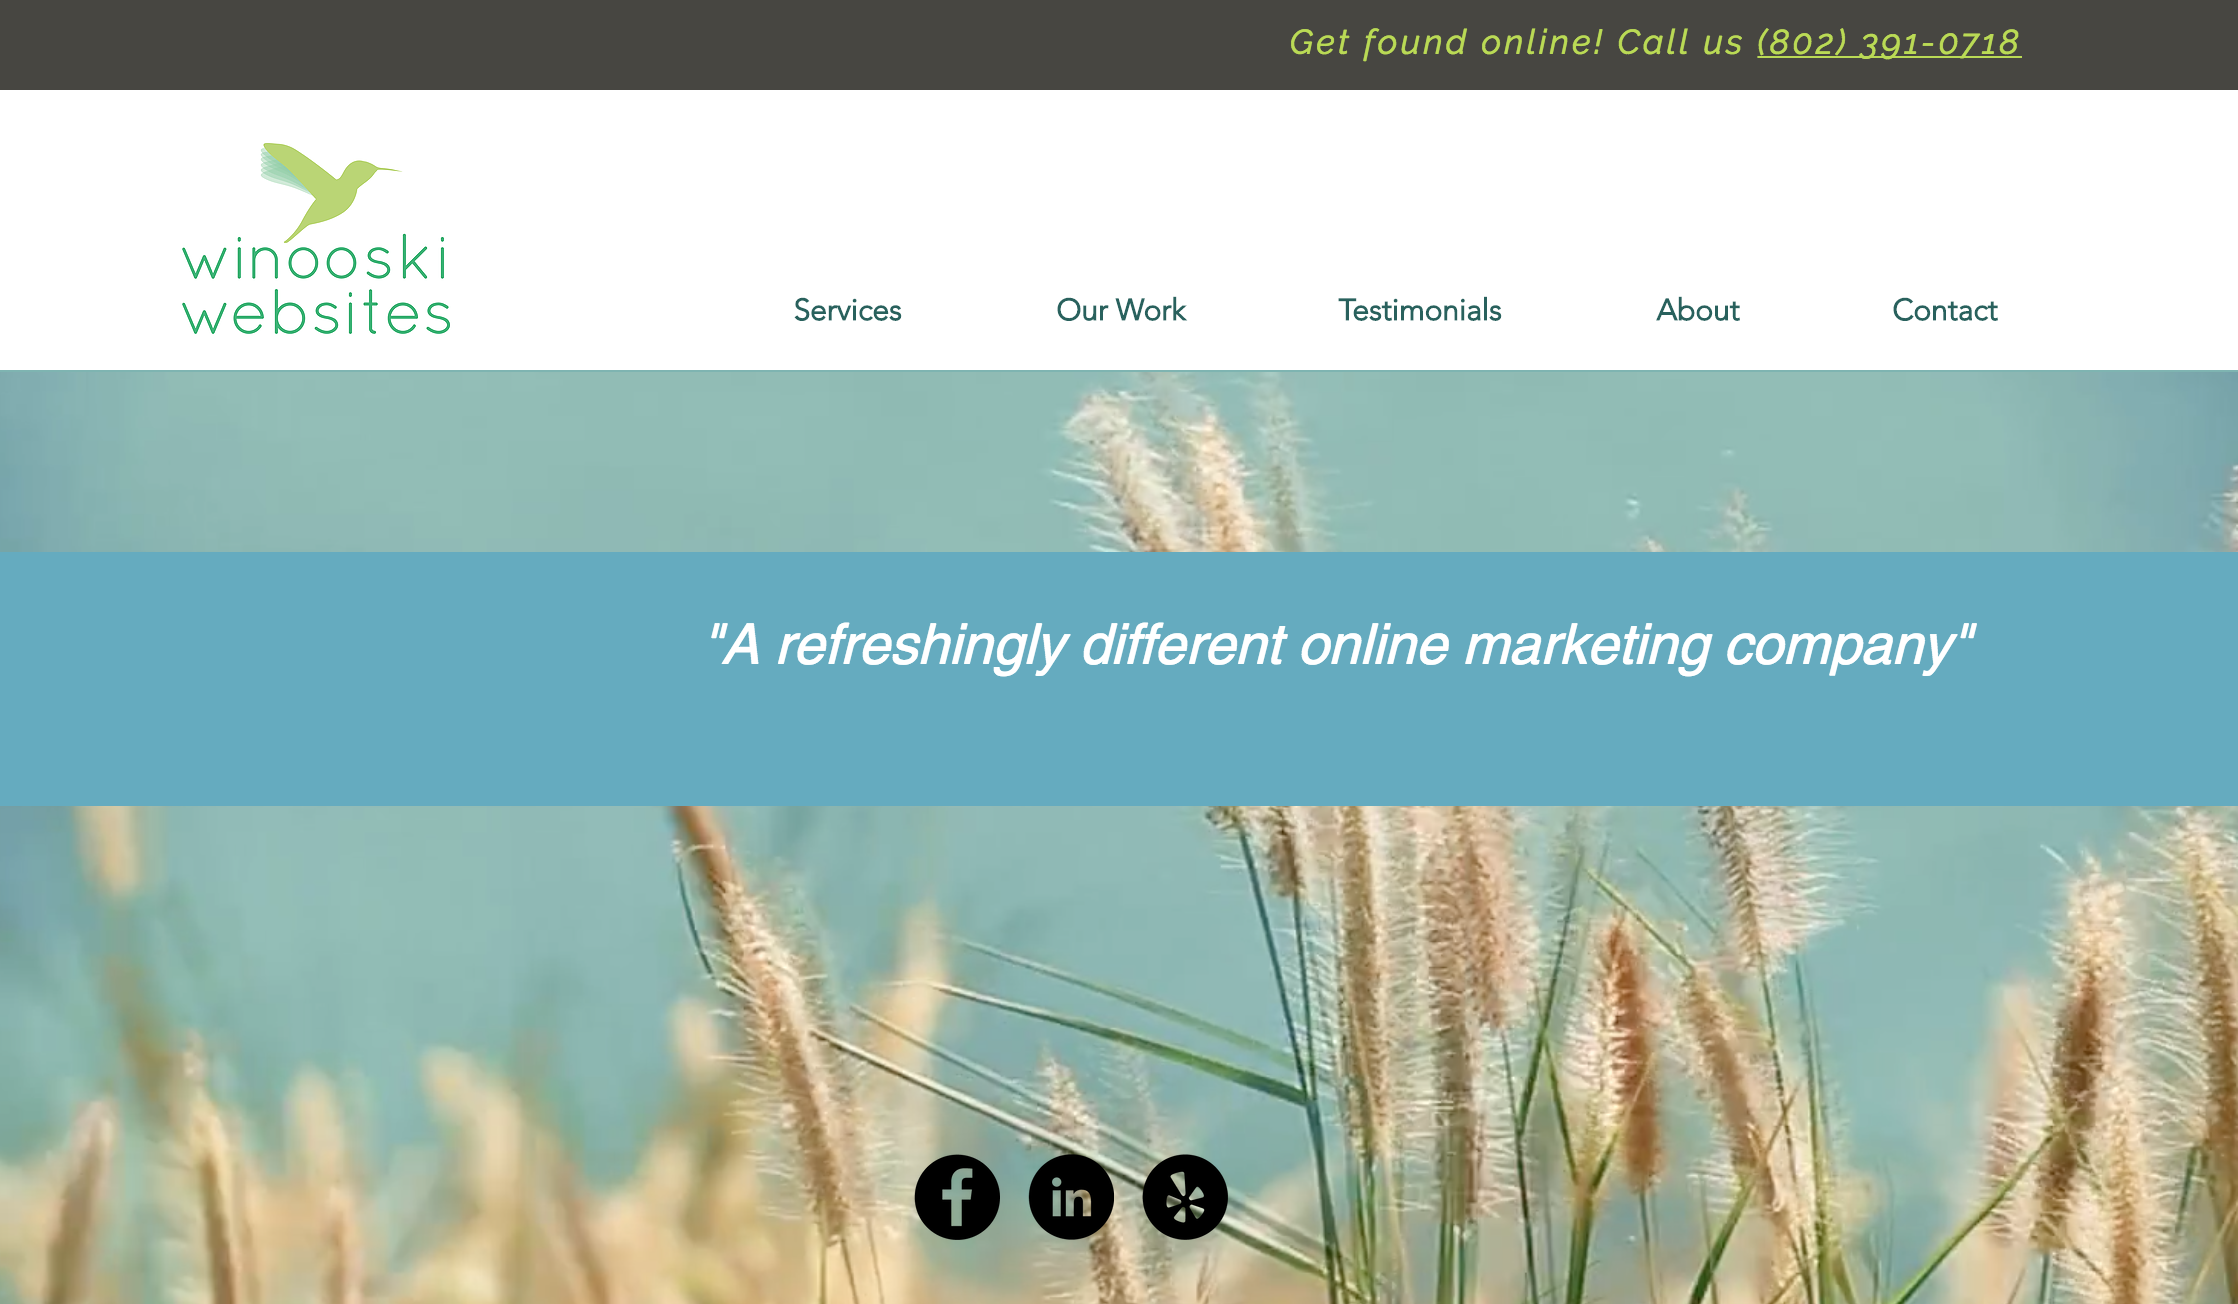 Winooski Websites | Web design & online marketing for small businesses